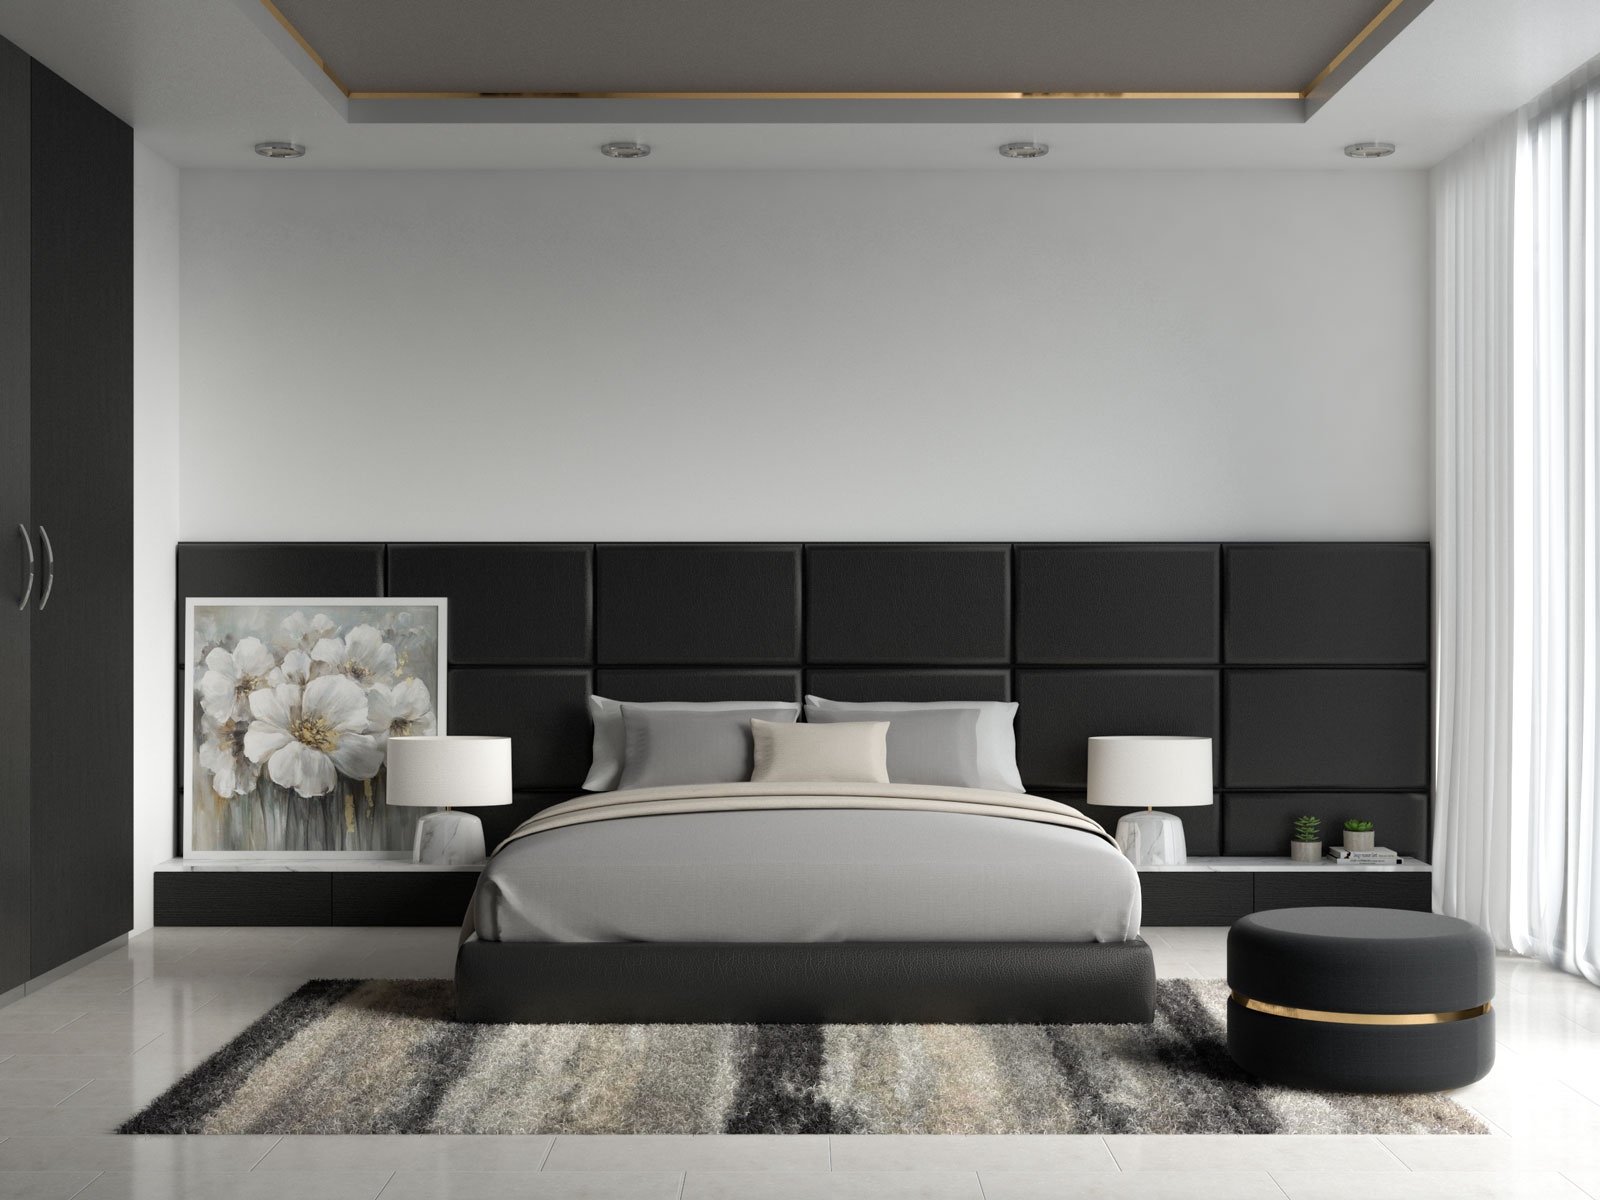 Gray and beige bedding with black bedroom furnishings